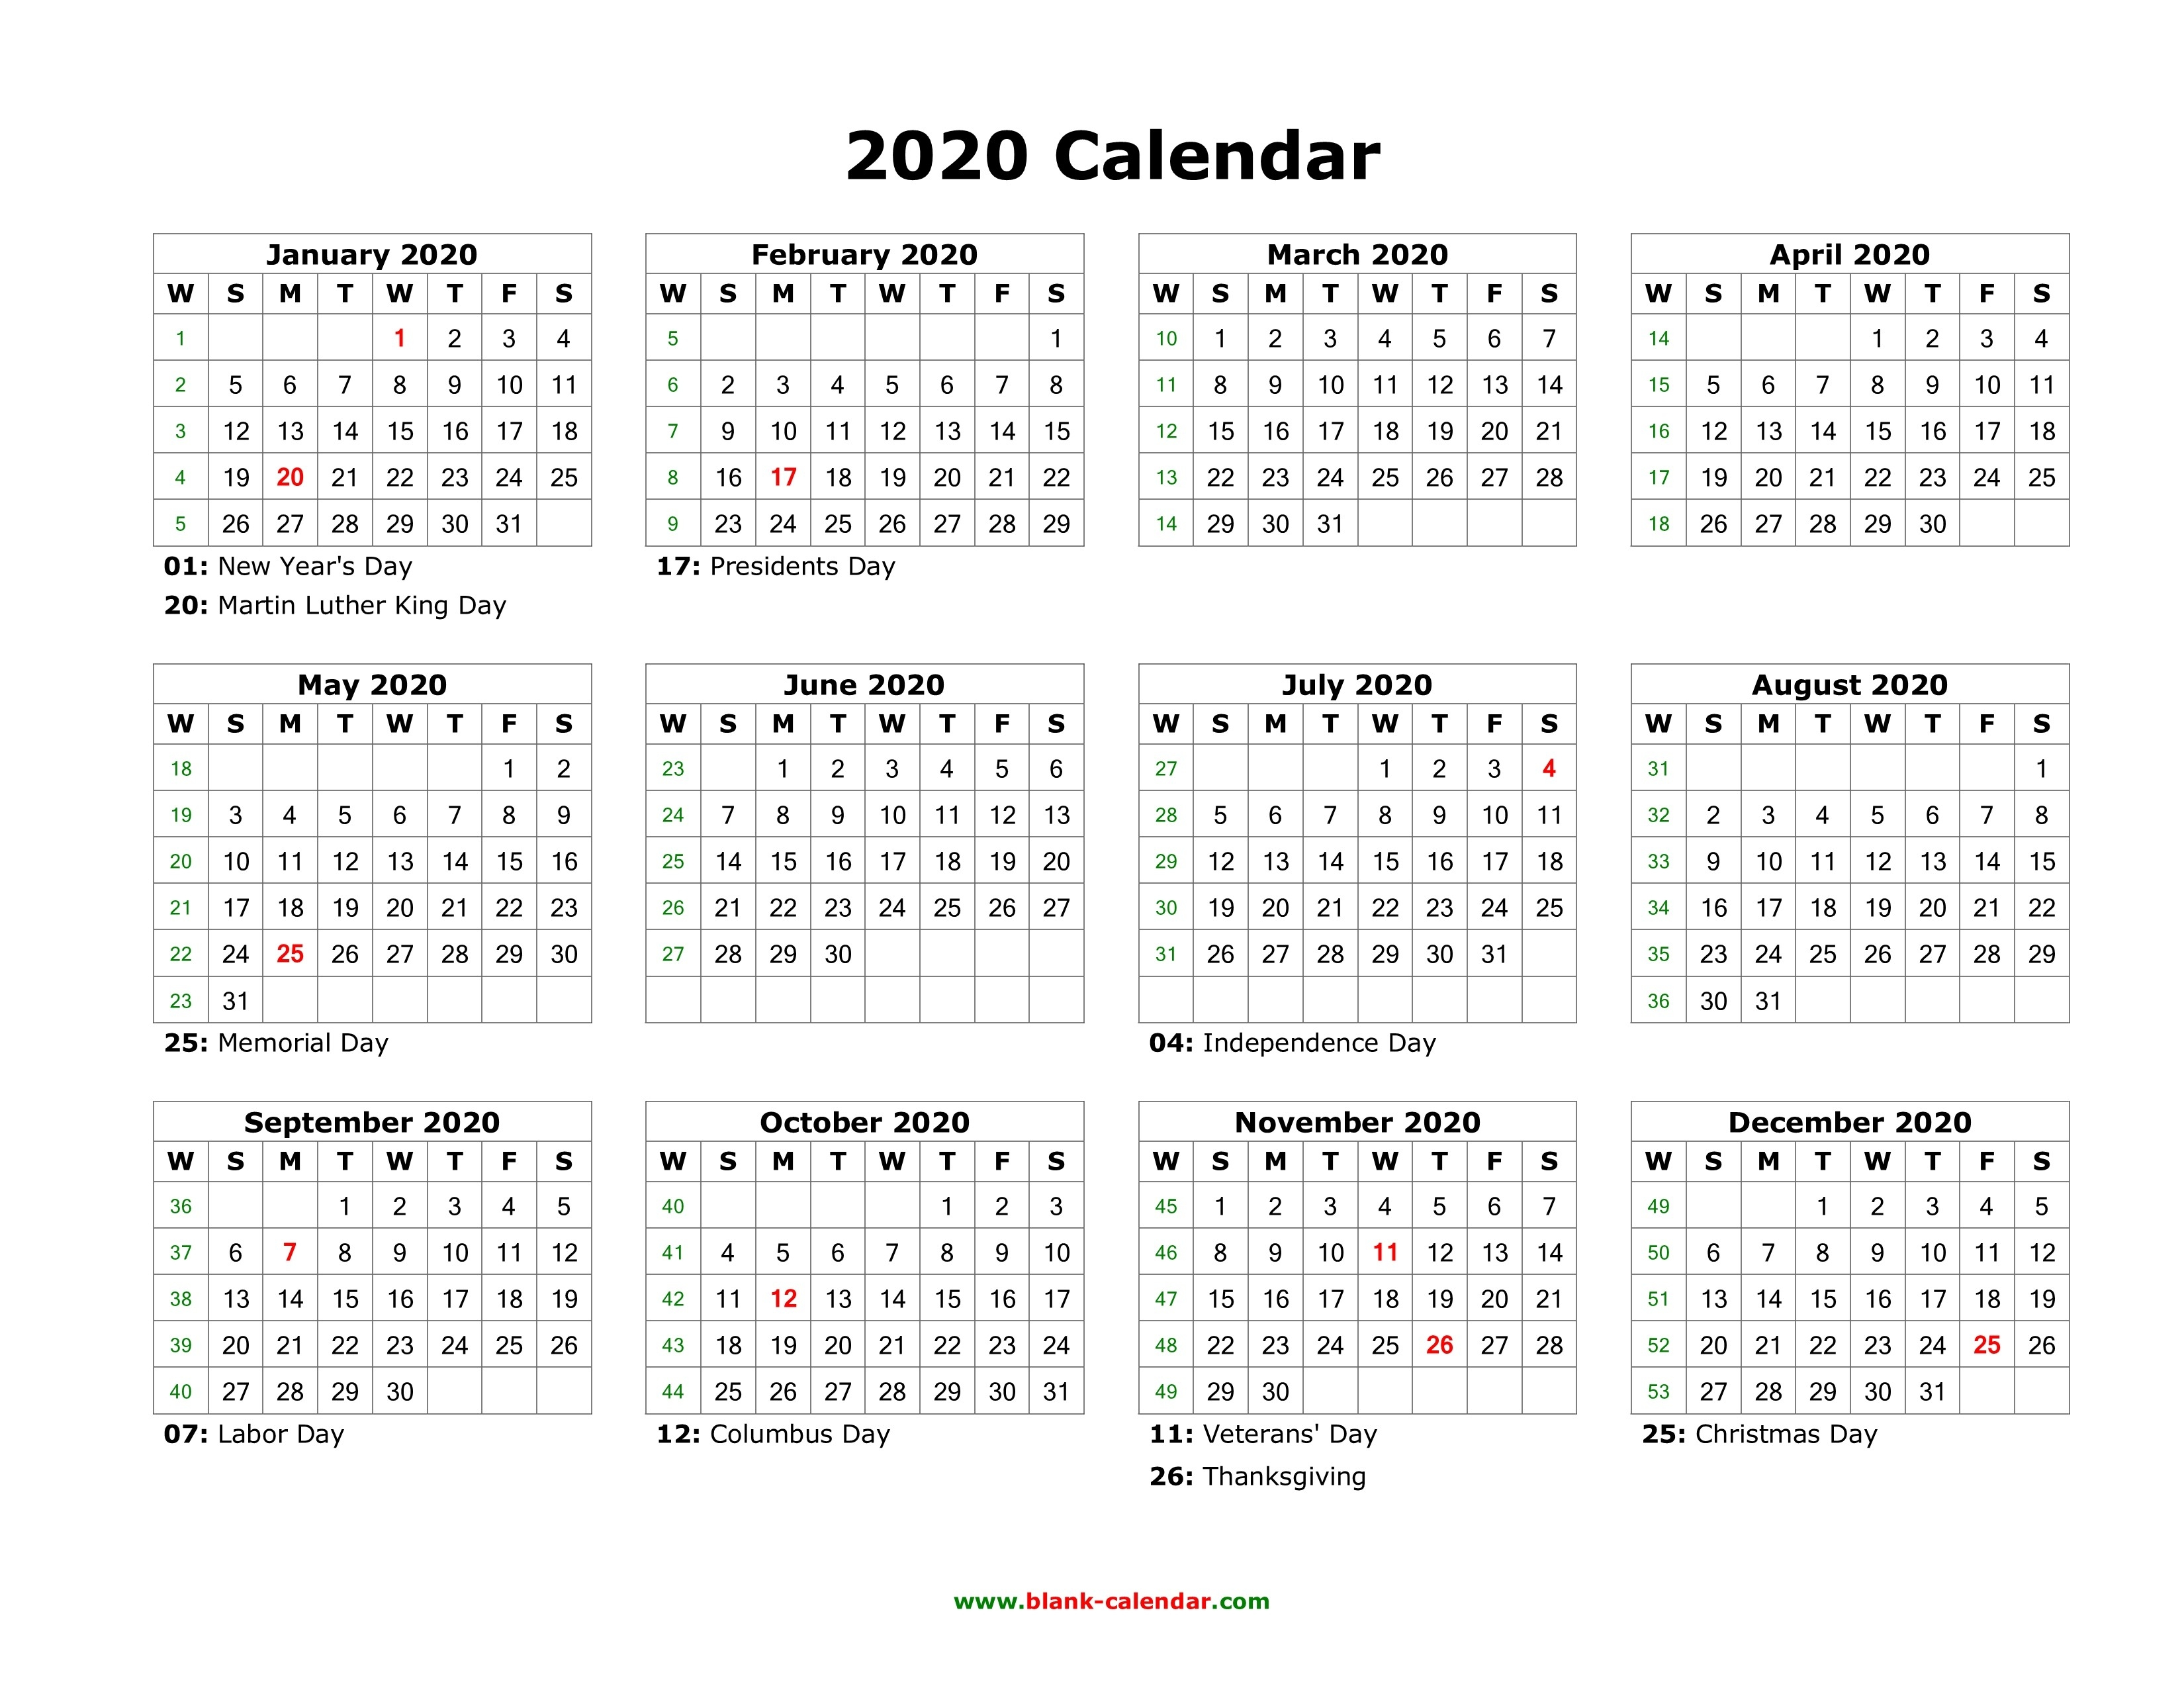 Download Blank Calendar 2020 With Us Holidays (12 Months On-2020 Calendar With Holidays